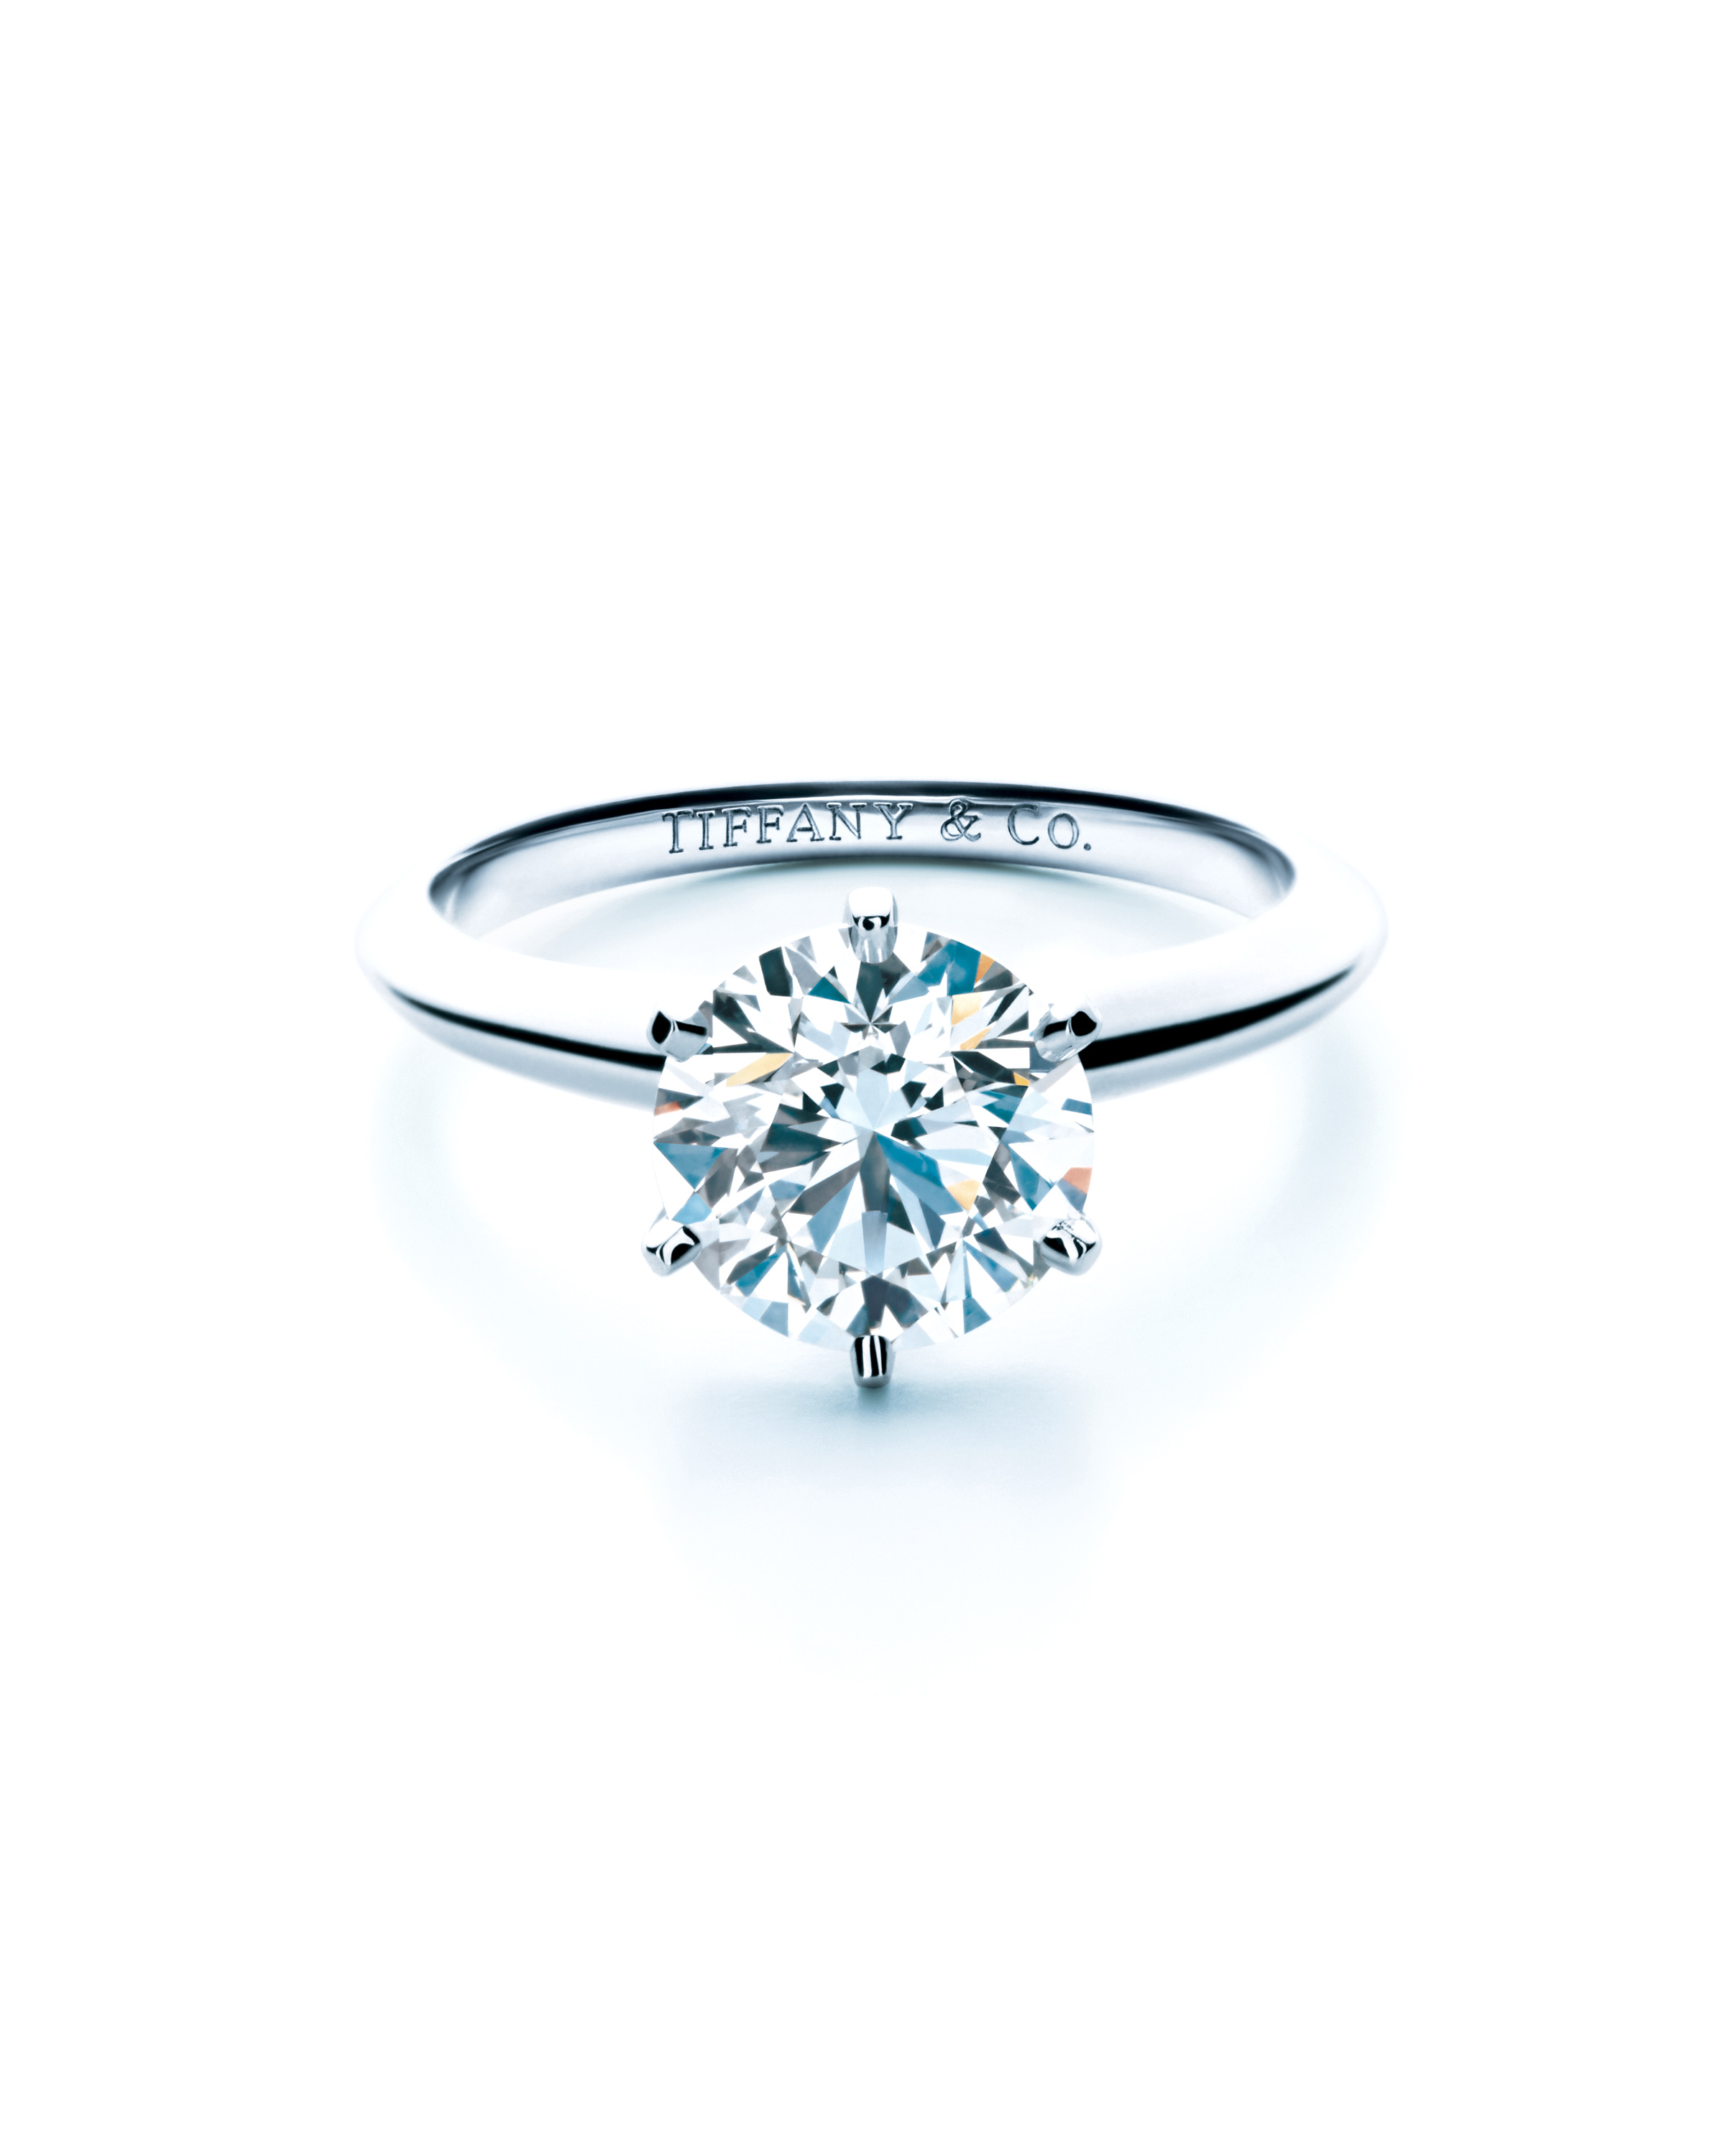 How To Match Your Wedding Band To Your Engagement Ring Vogue Australia